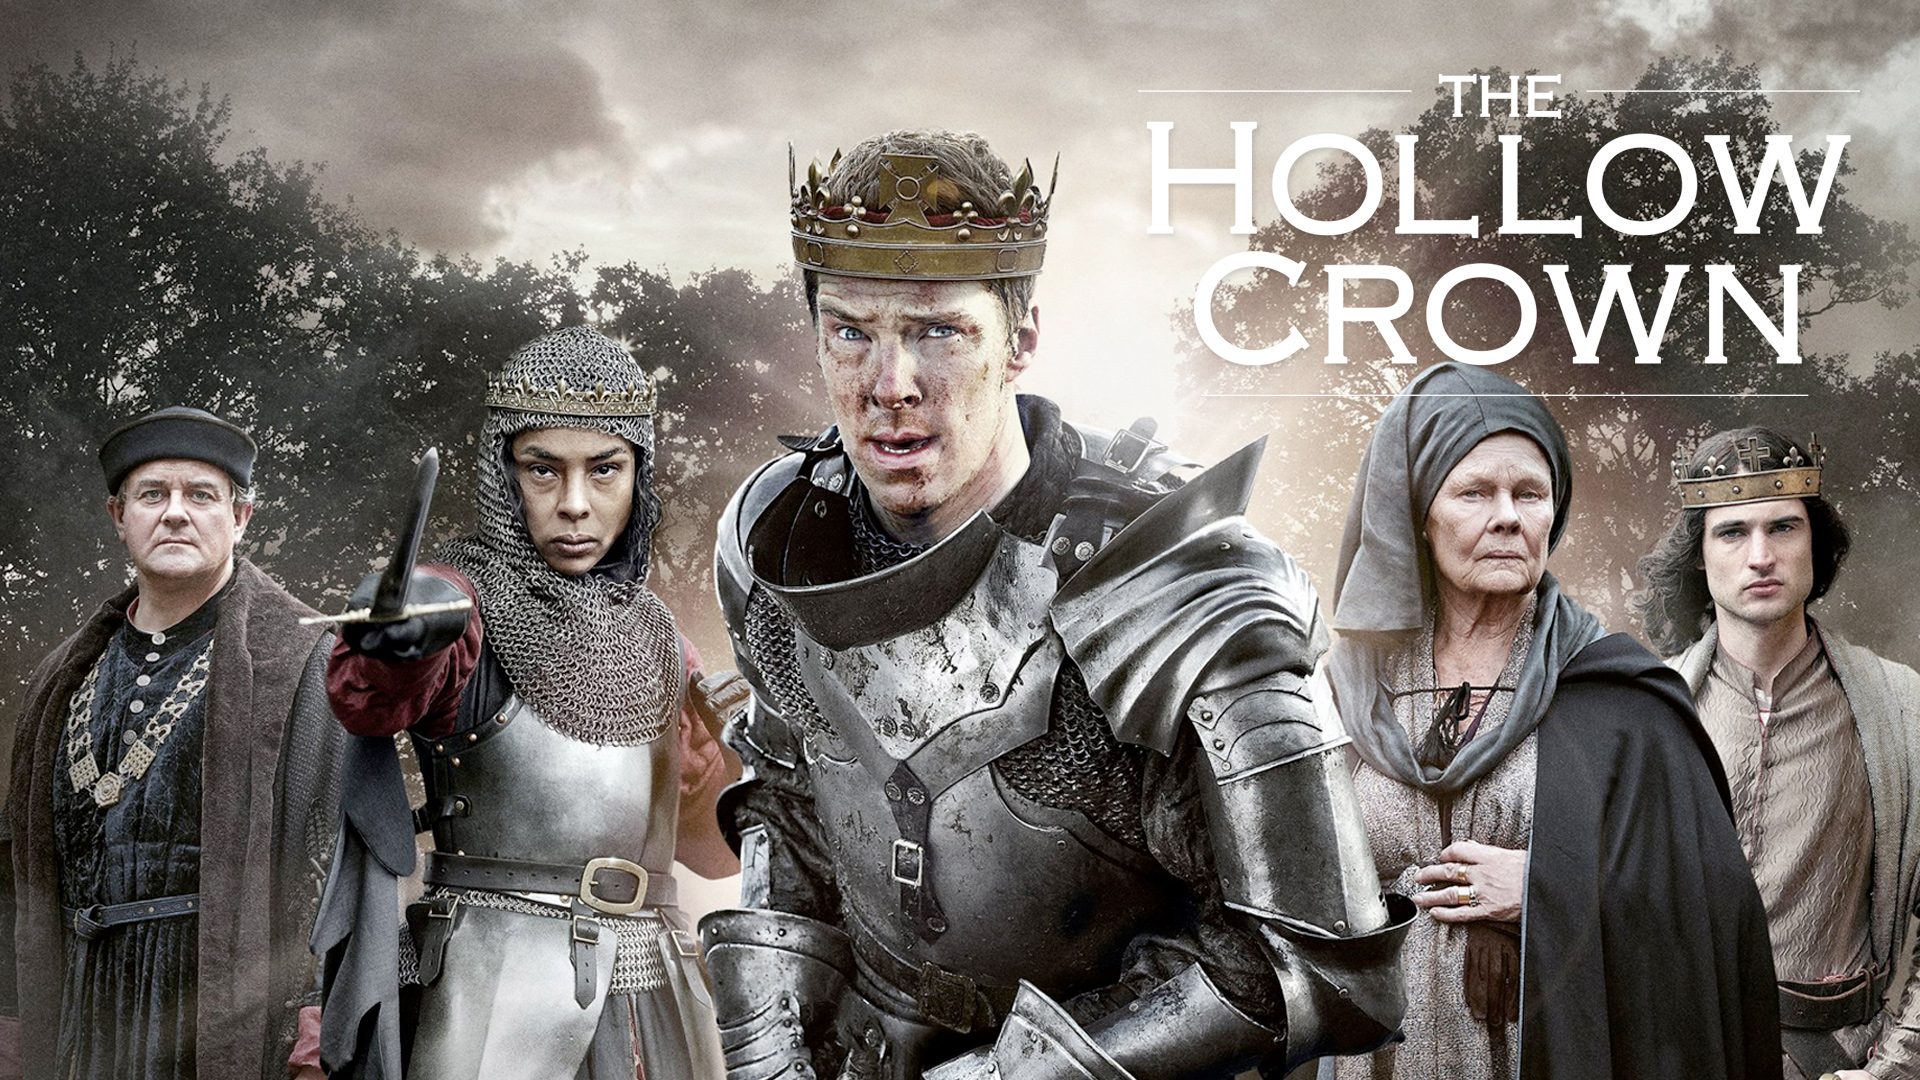 The Hollow Crown: The Wars of the Roses | Henry VI Part 1